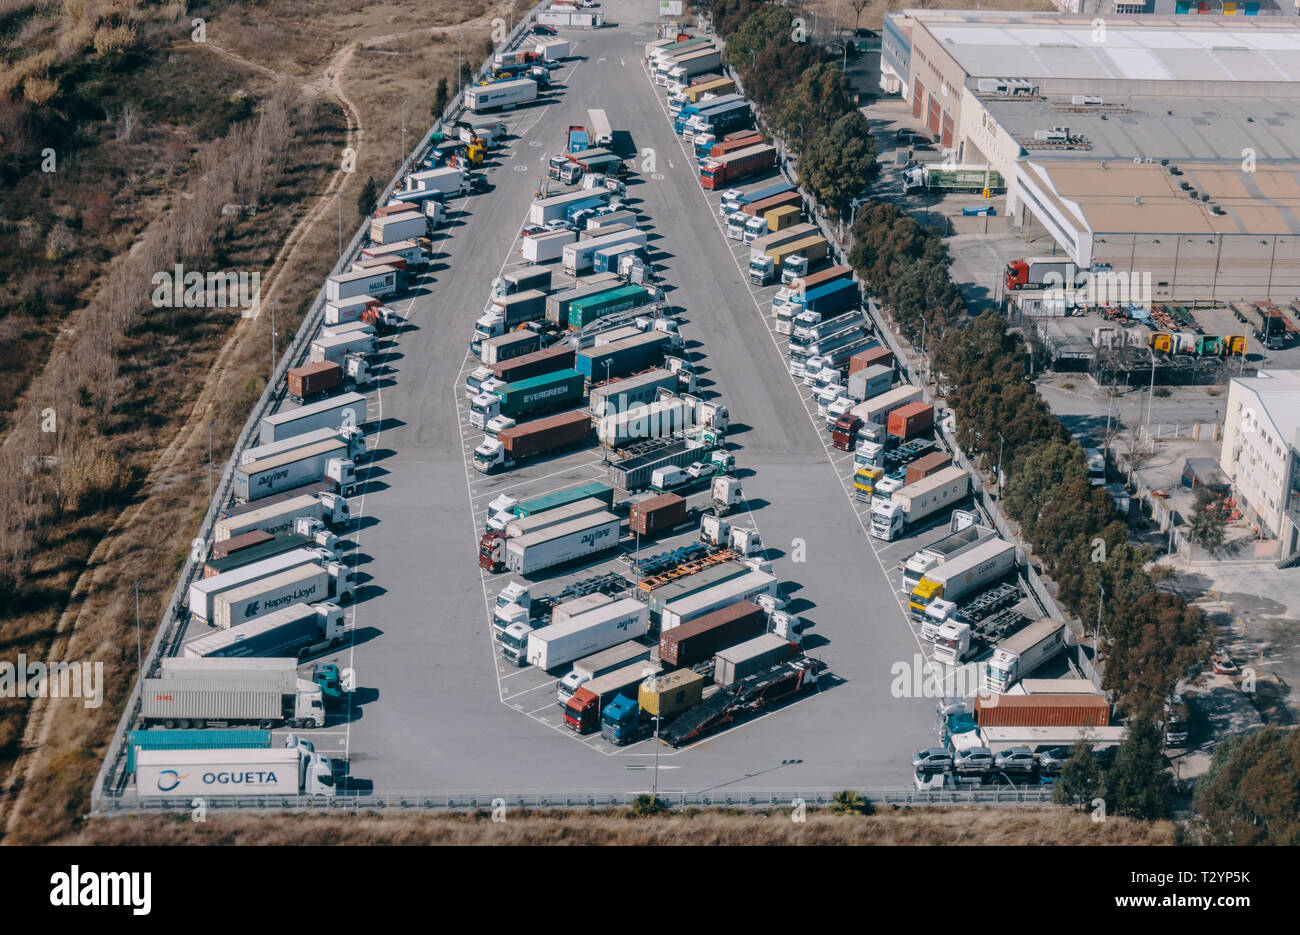 Haulage trucks sit parked in a distribution warehouse in an aerial photograph taken in public airspace over Zona Franca, Barcelona. - Stock Image